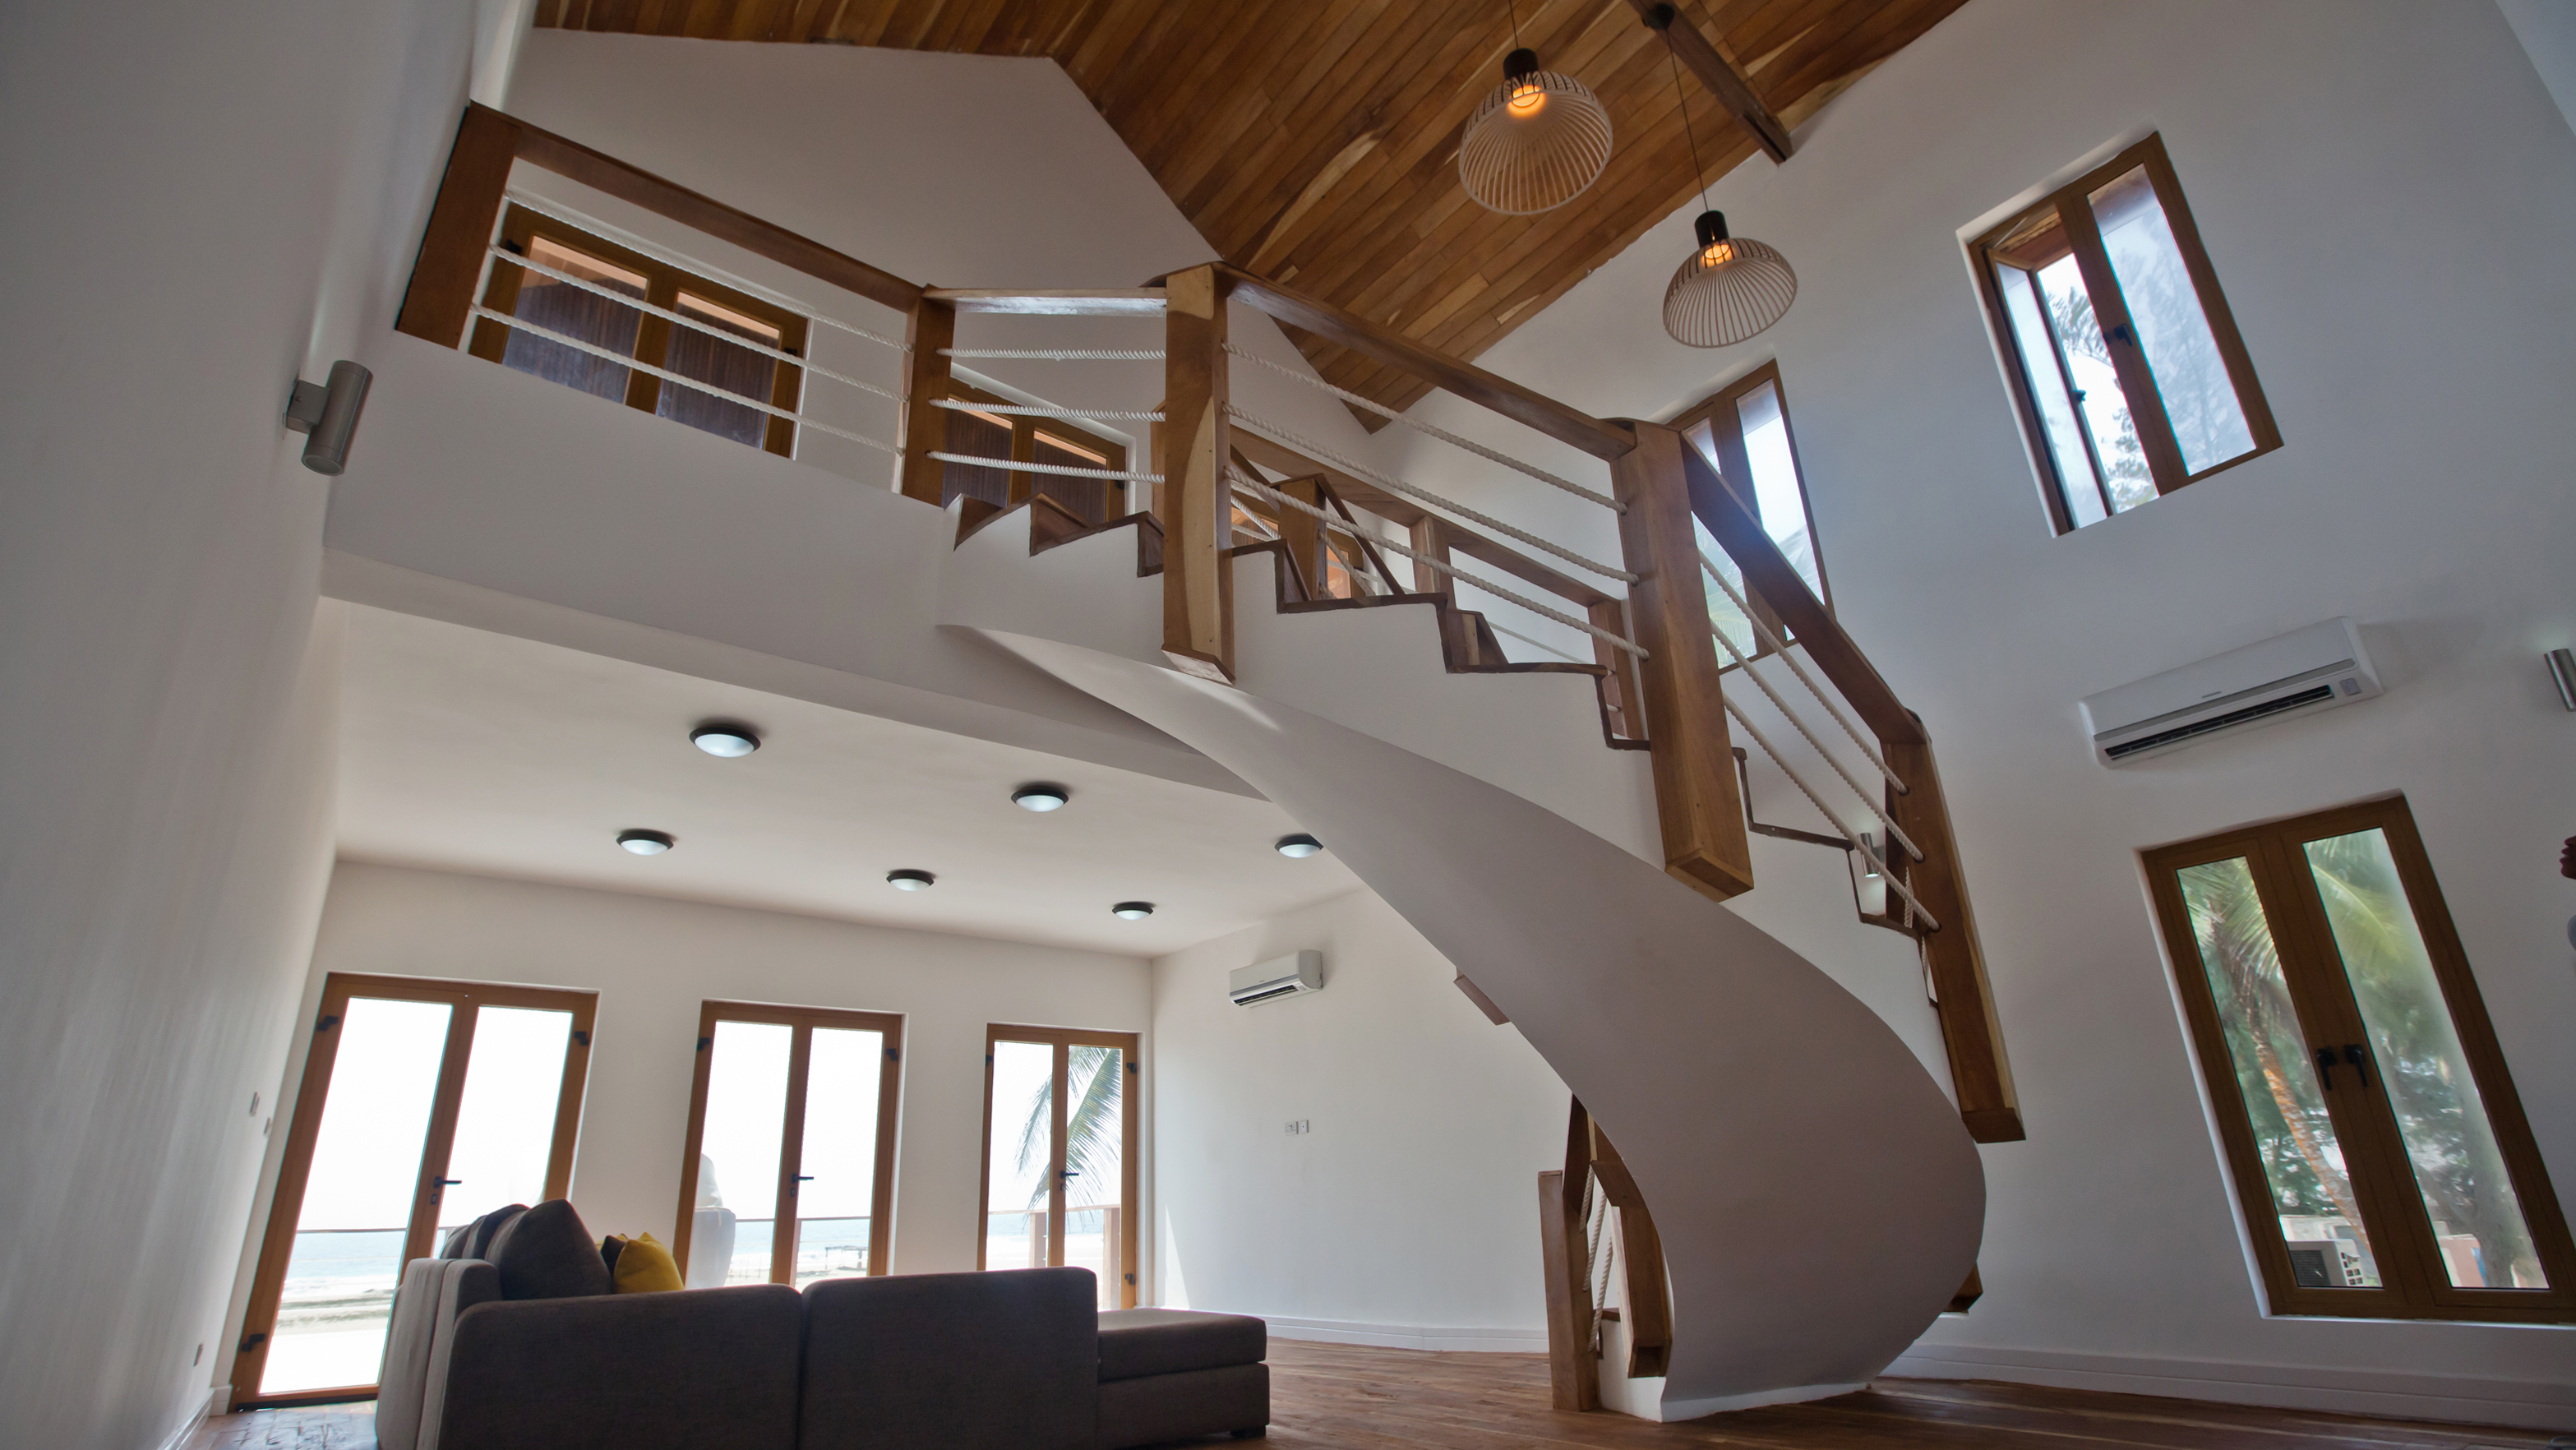 PRIVATE BEACH HOUSE INTERIOR 1